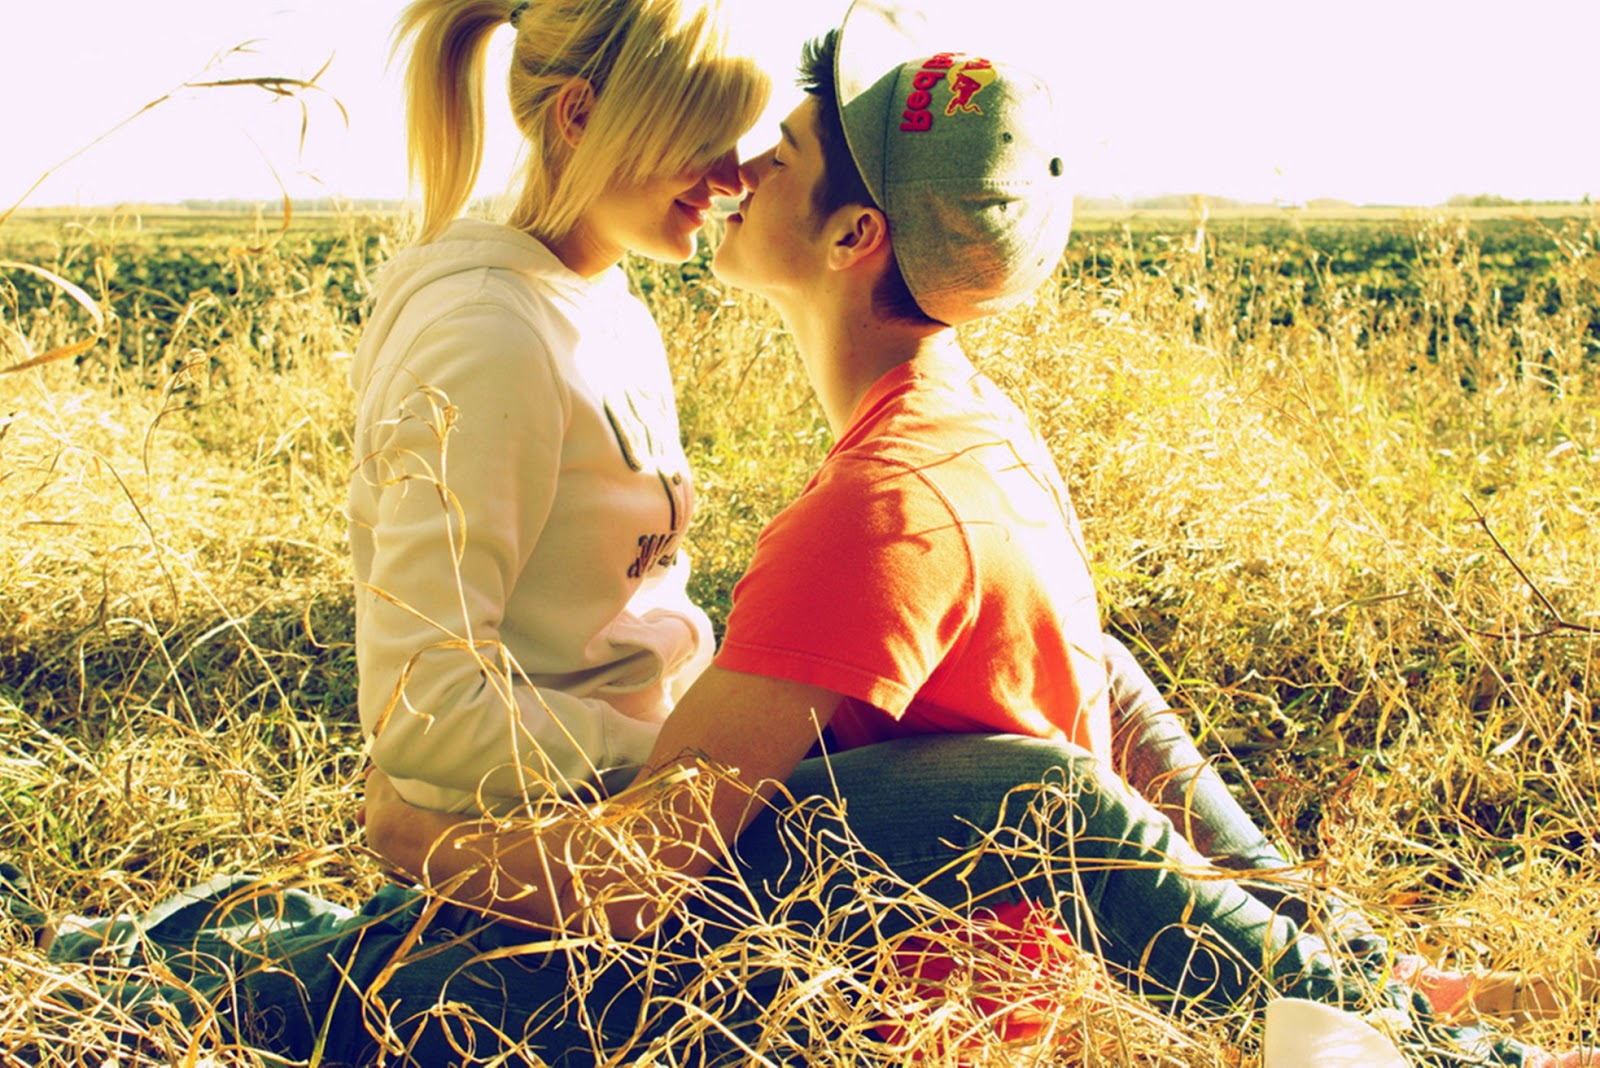 Romantic  Couples in love boy girl in love kissing day kiss.jpg